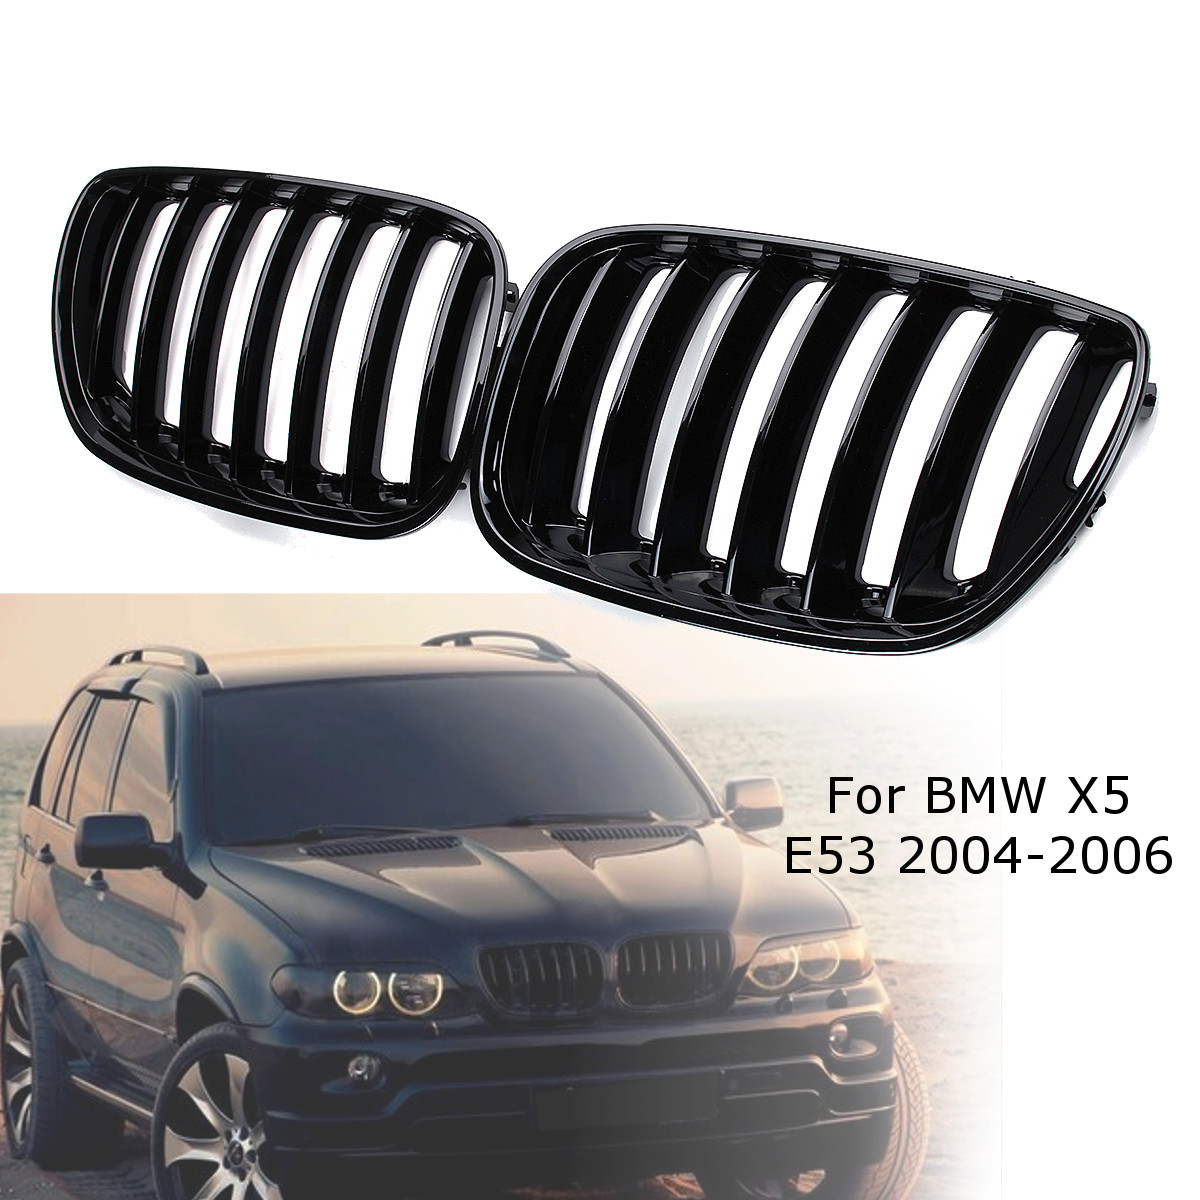 2Pcs Gloss Black Car Front Kidney Grill Grilles Right & Left for BMW X5 E53 2004 2005 2006 ABS 51137124815 511371248162Pcs Gloss Black Car Front Kidney Grill Grilles Right & Left for BMW X5 E53 2004 2005 2006 ABS 51137124815 51137124816